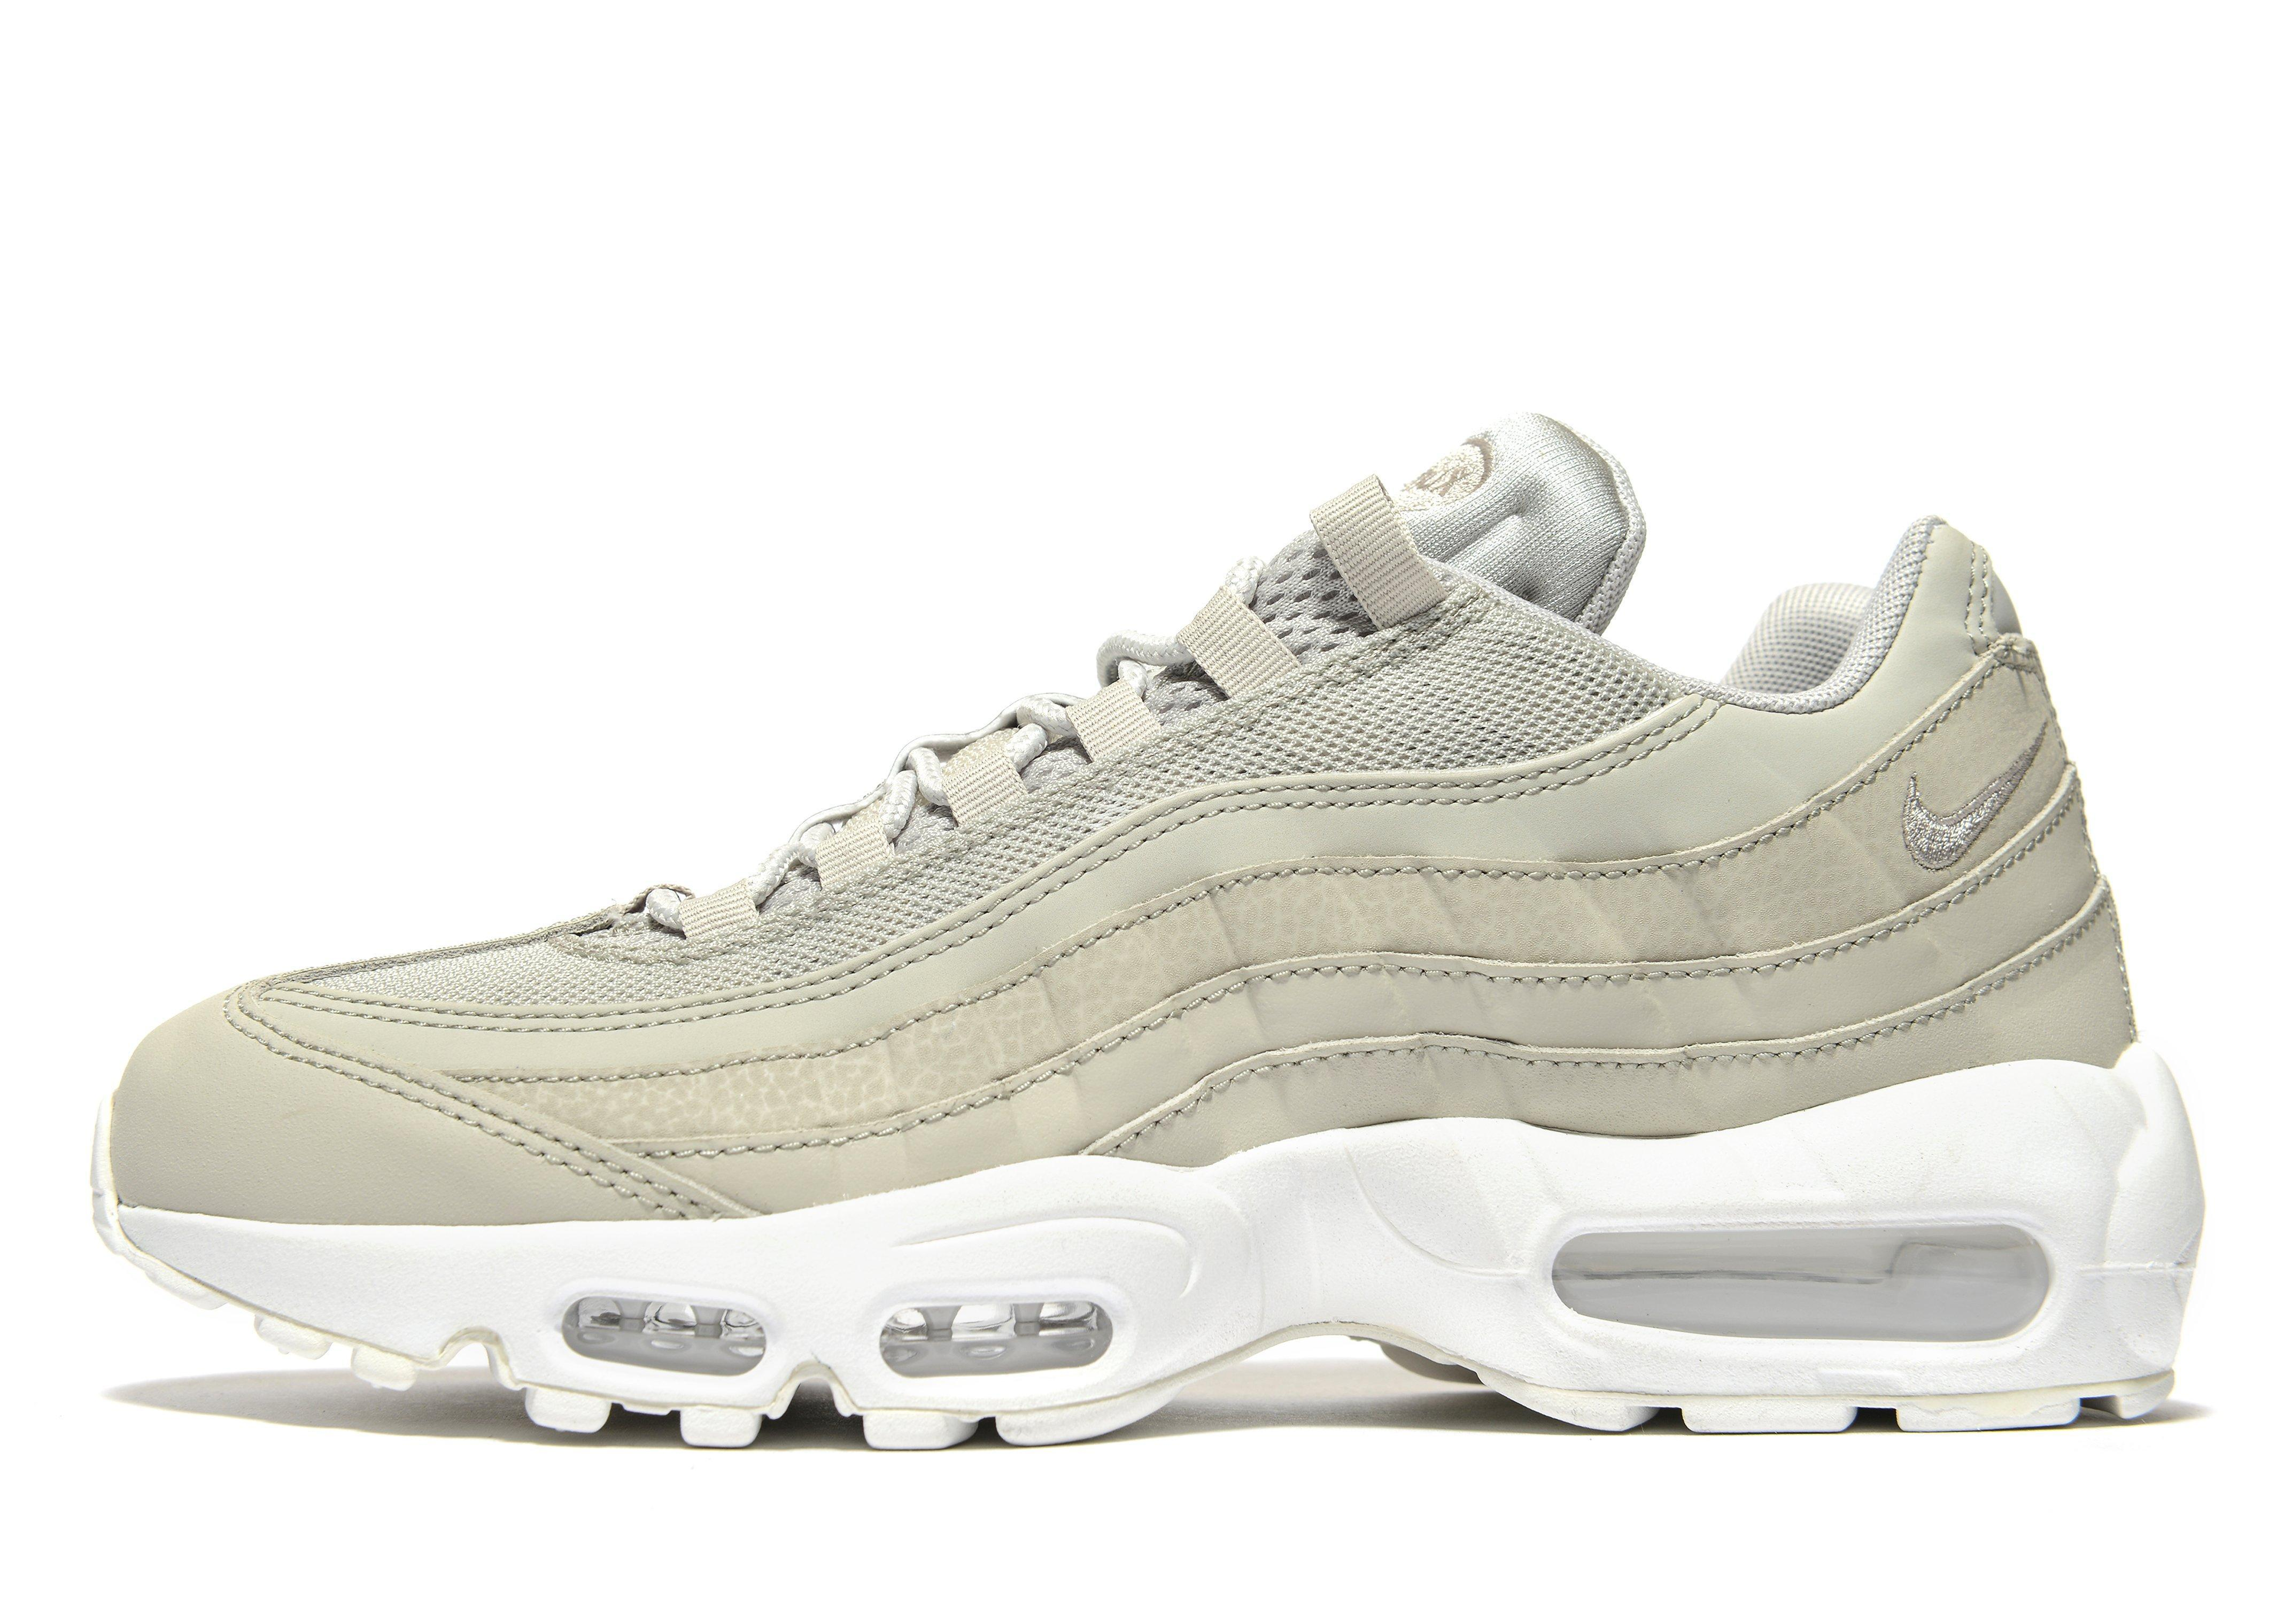 cef70c9507a ... free shipping lyst nike air max 95 in white for men 6866a d9e5f